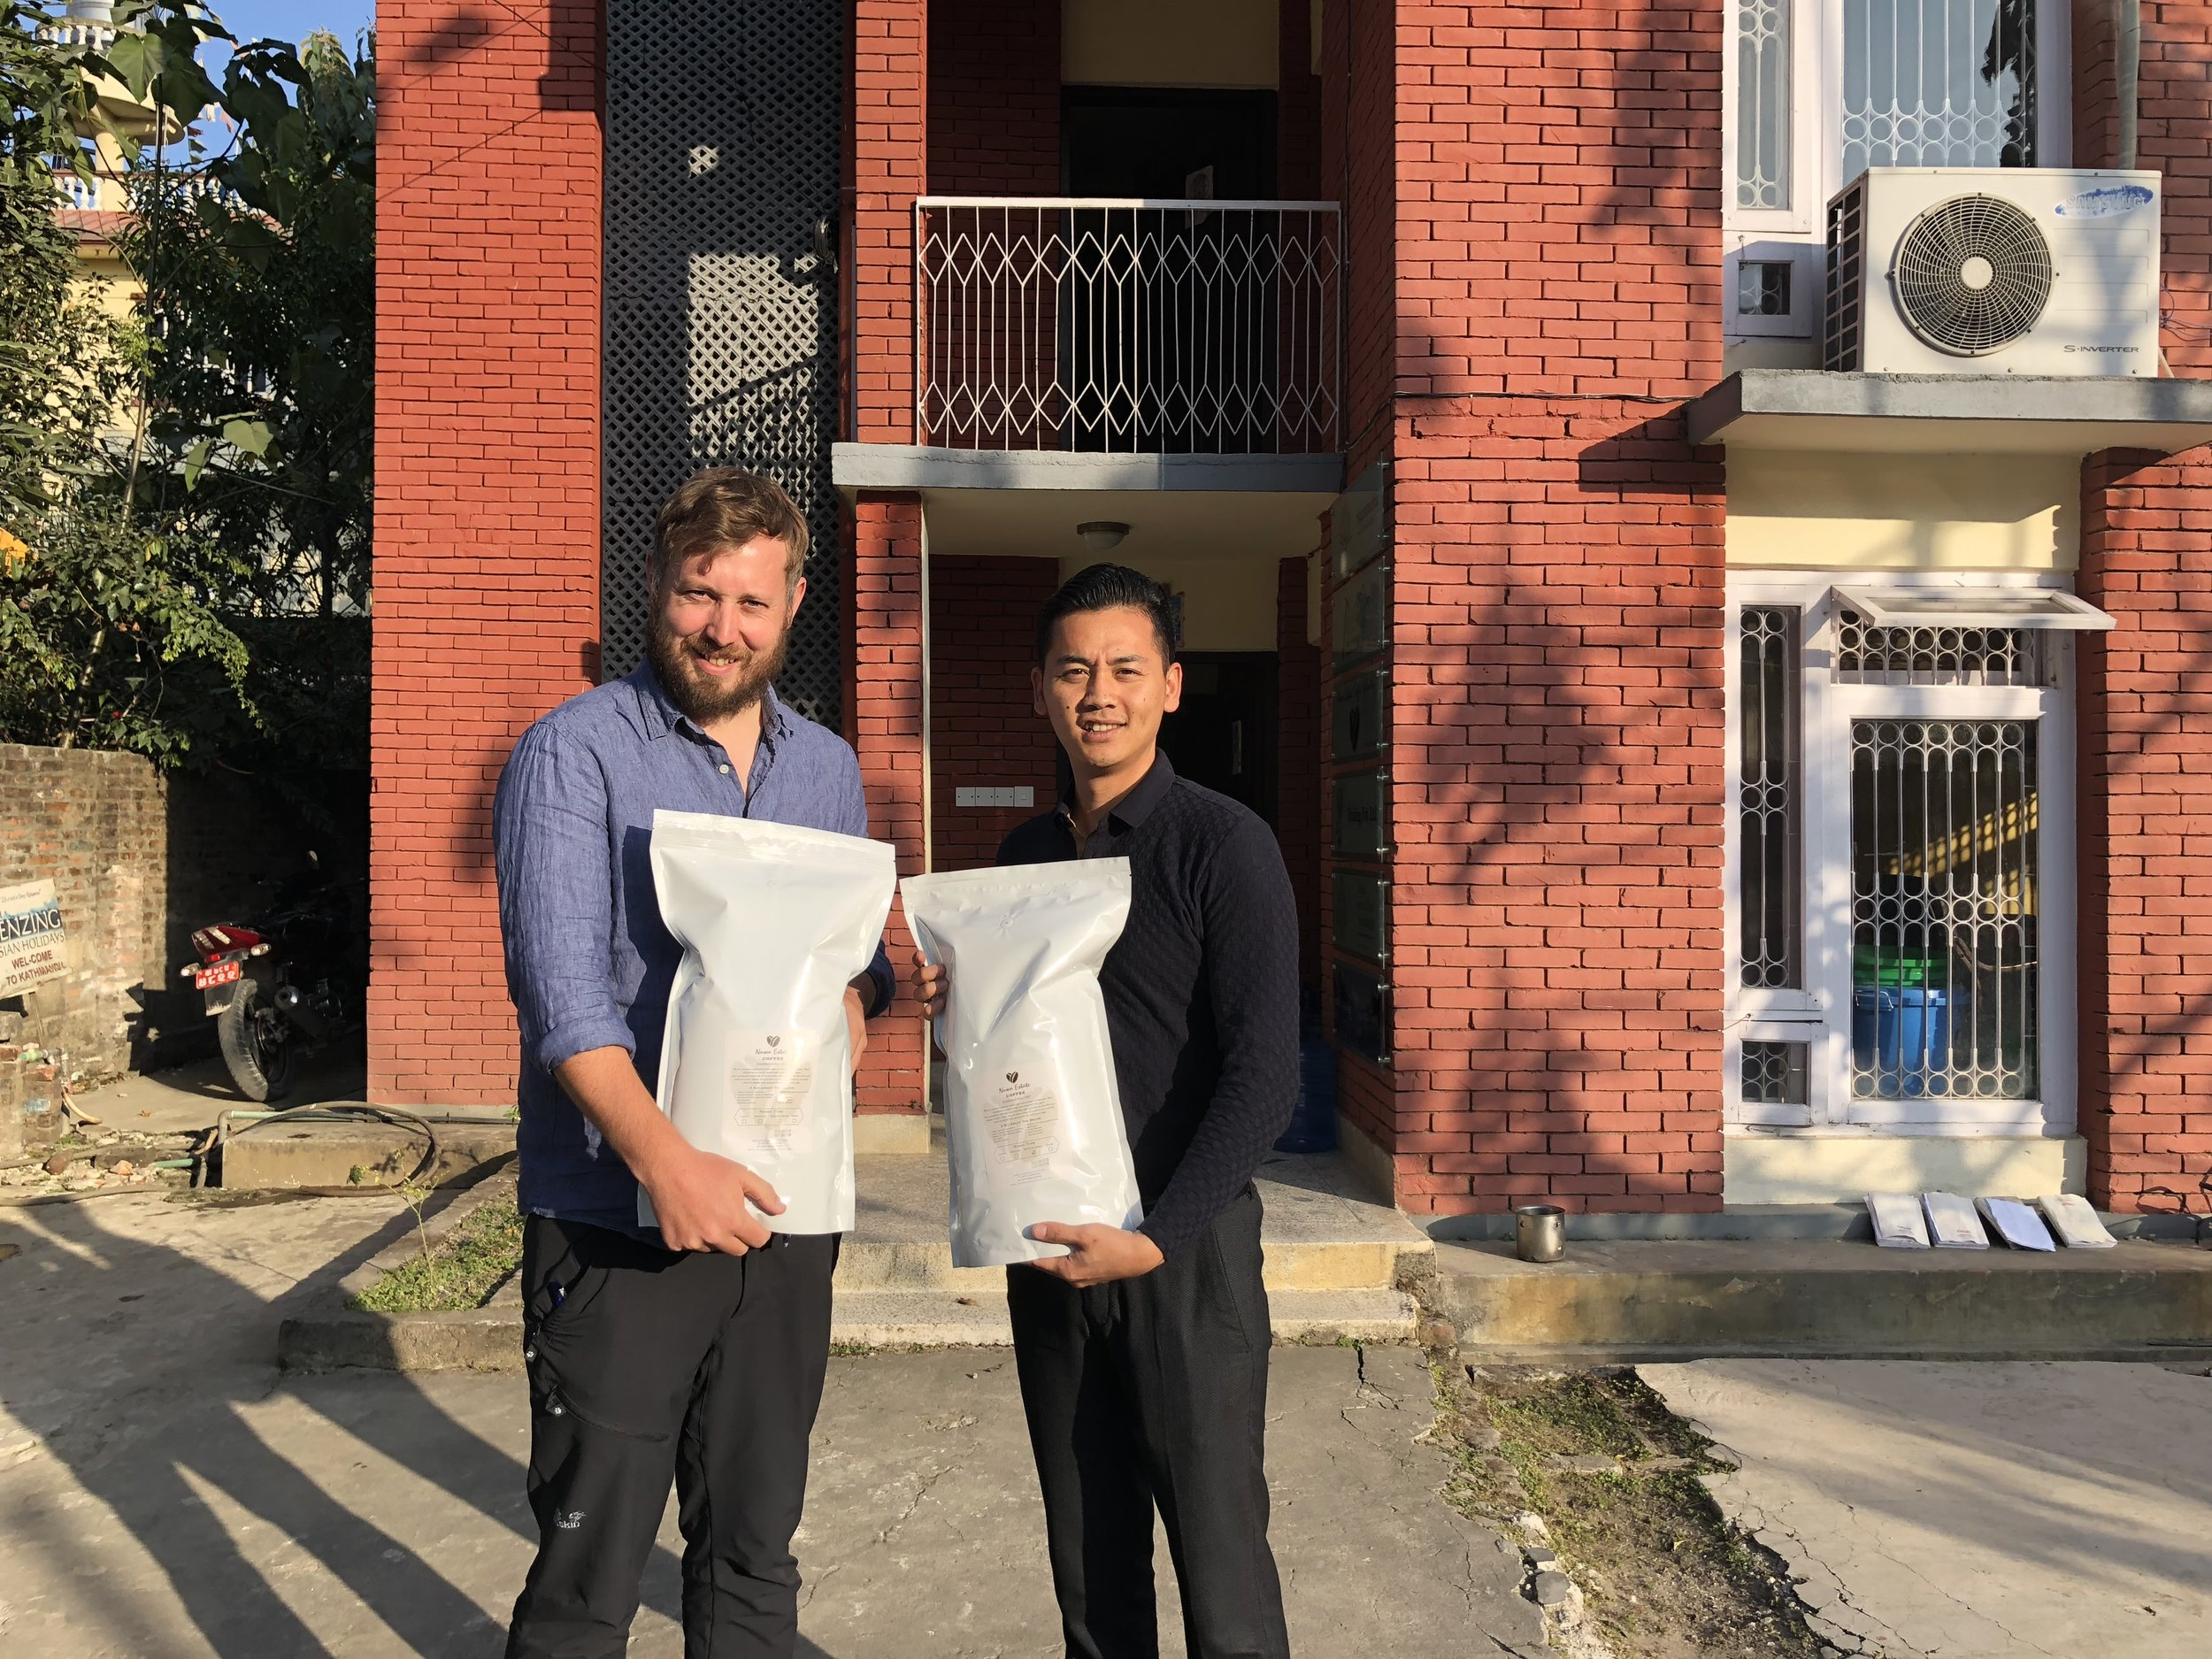 Appa Sherpa, head of Nuwa Coffee Estate, hands over the roasted beans to Dr Morgan Phillips, TGT Co-Director in Kathmandu.